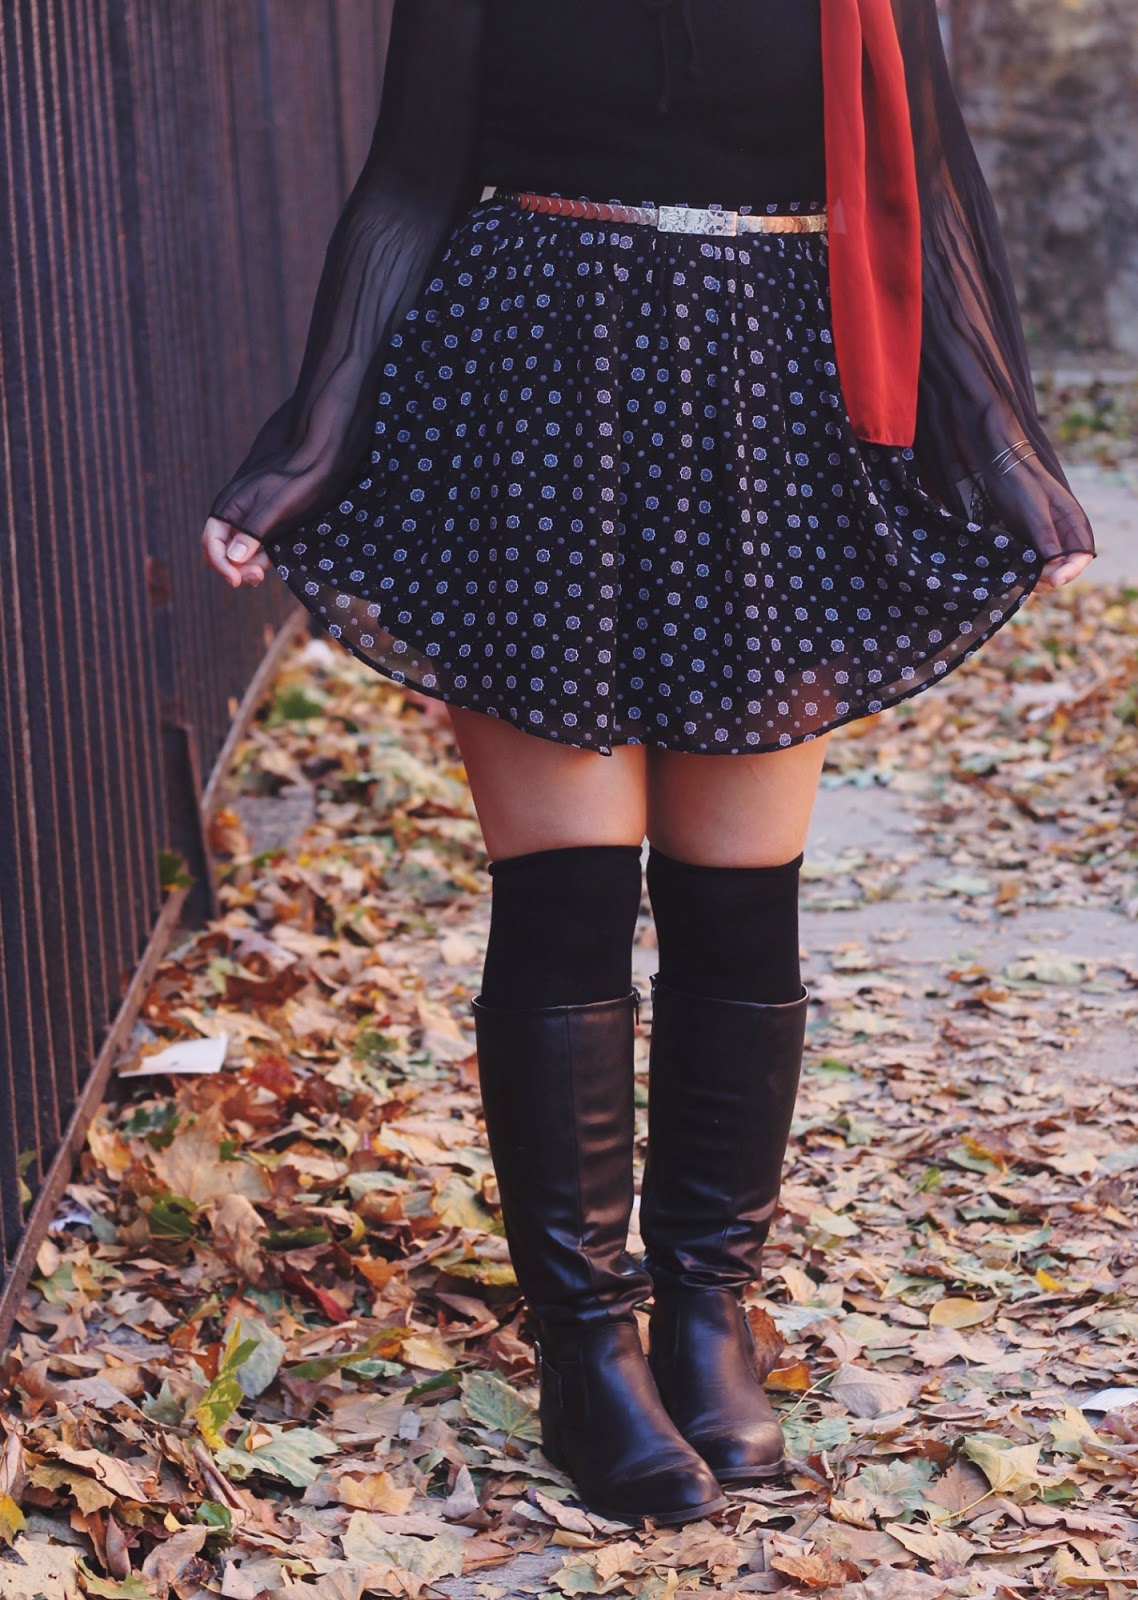 Knee Socks and Boots | Someone Like You